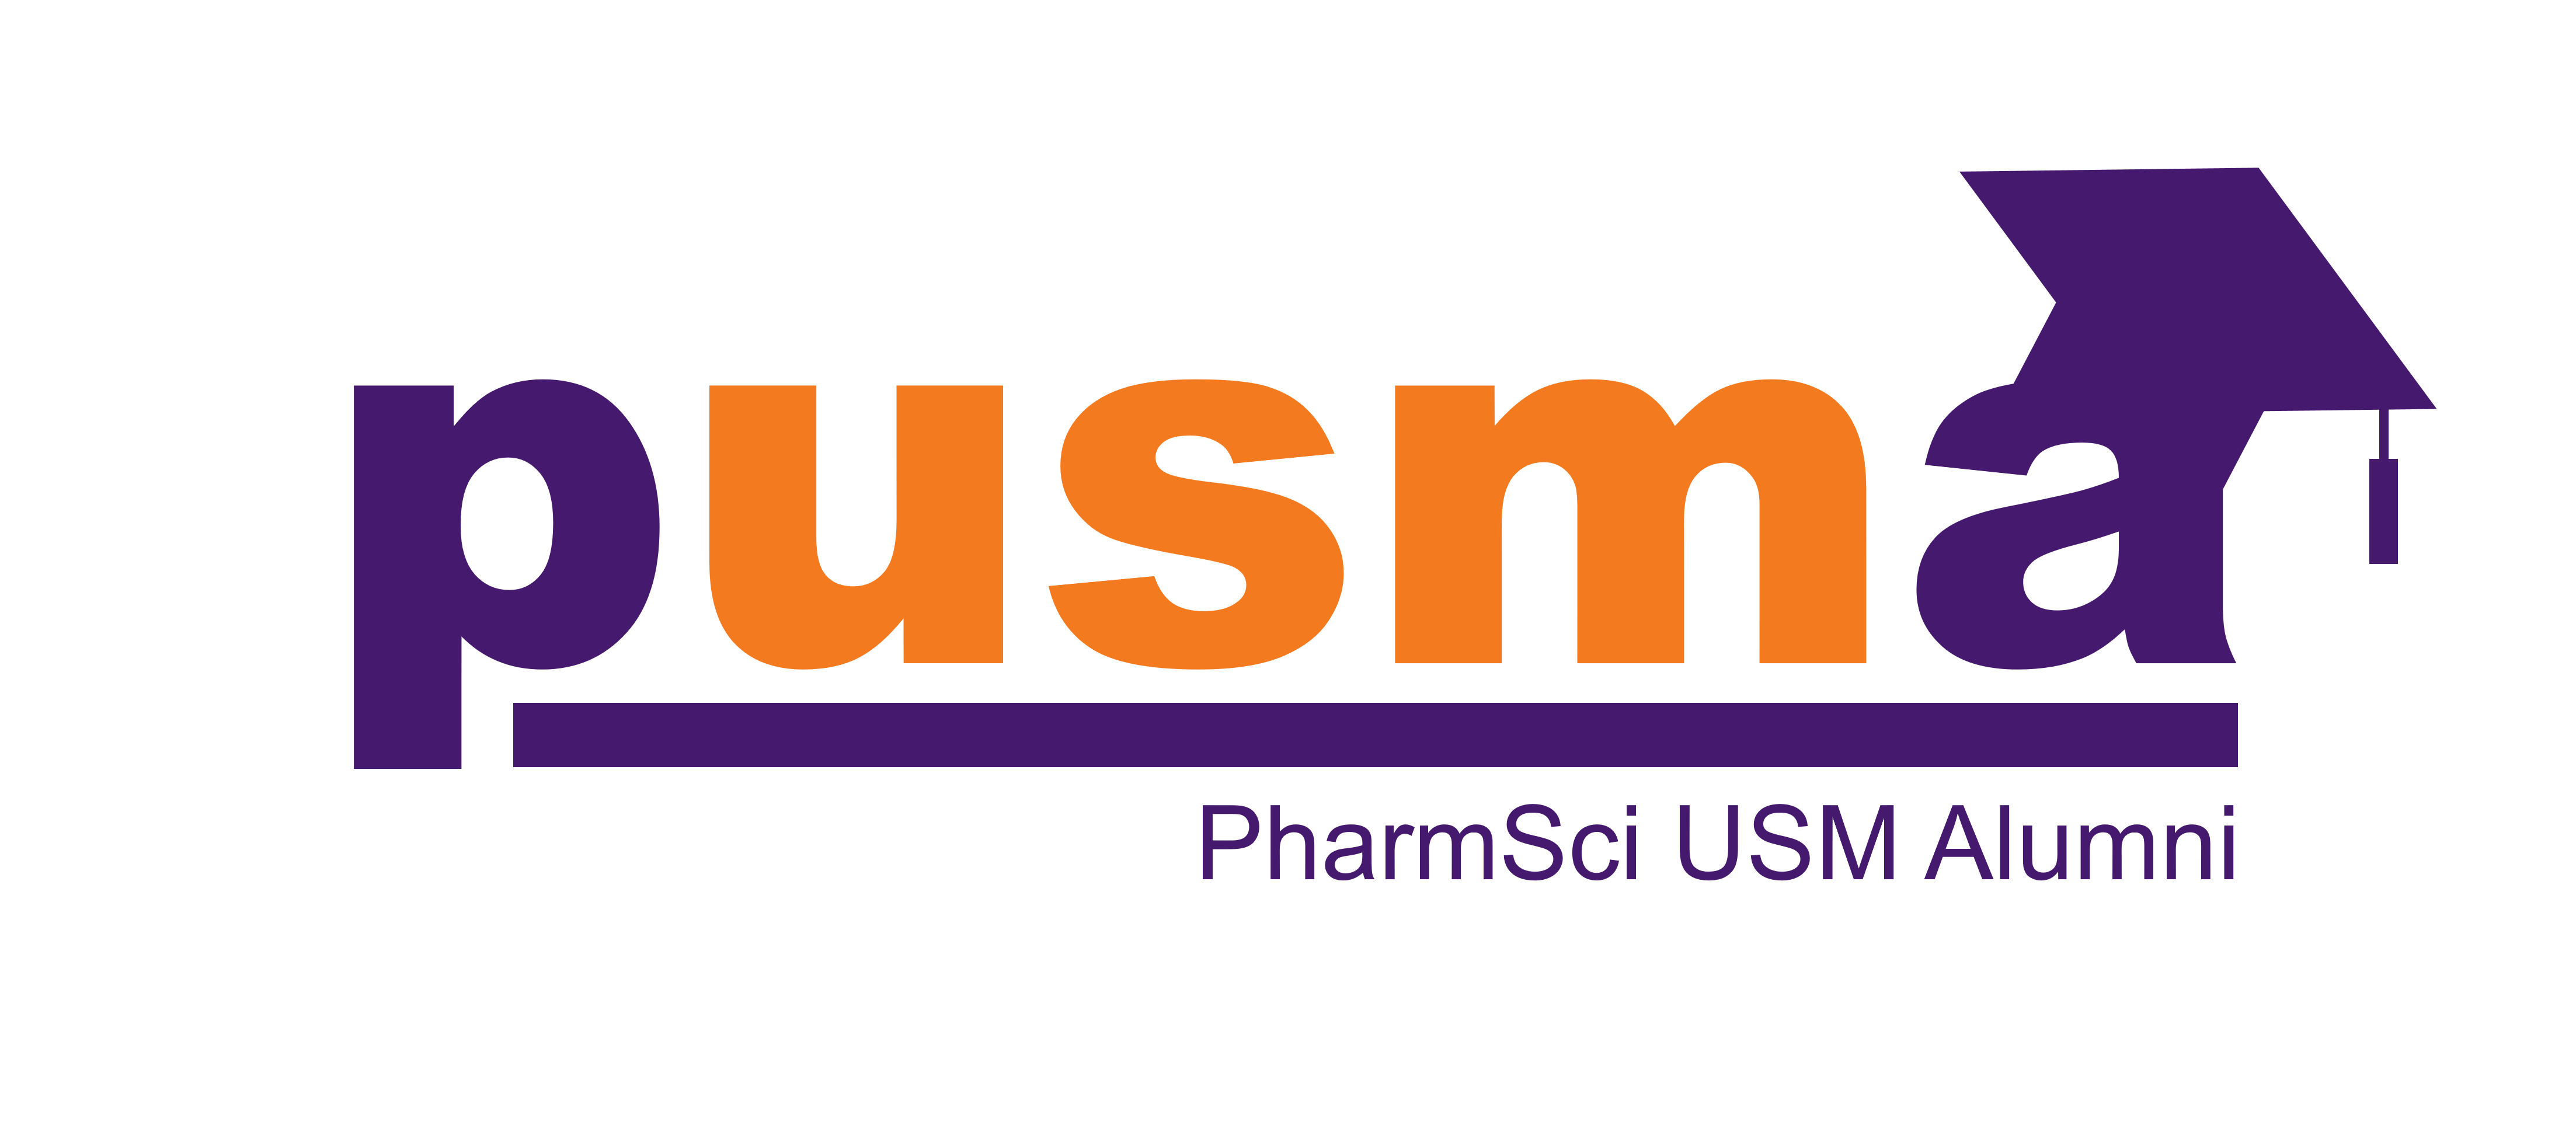 PUSMA logo transparent background